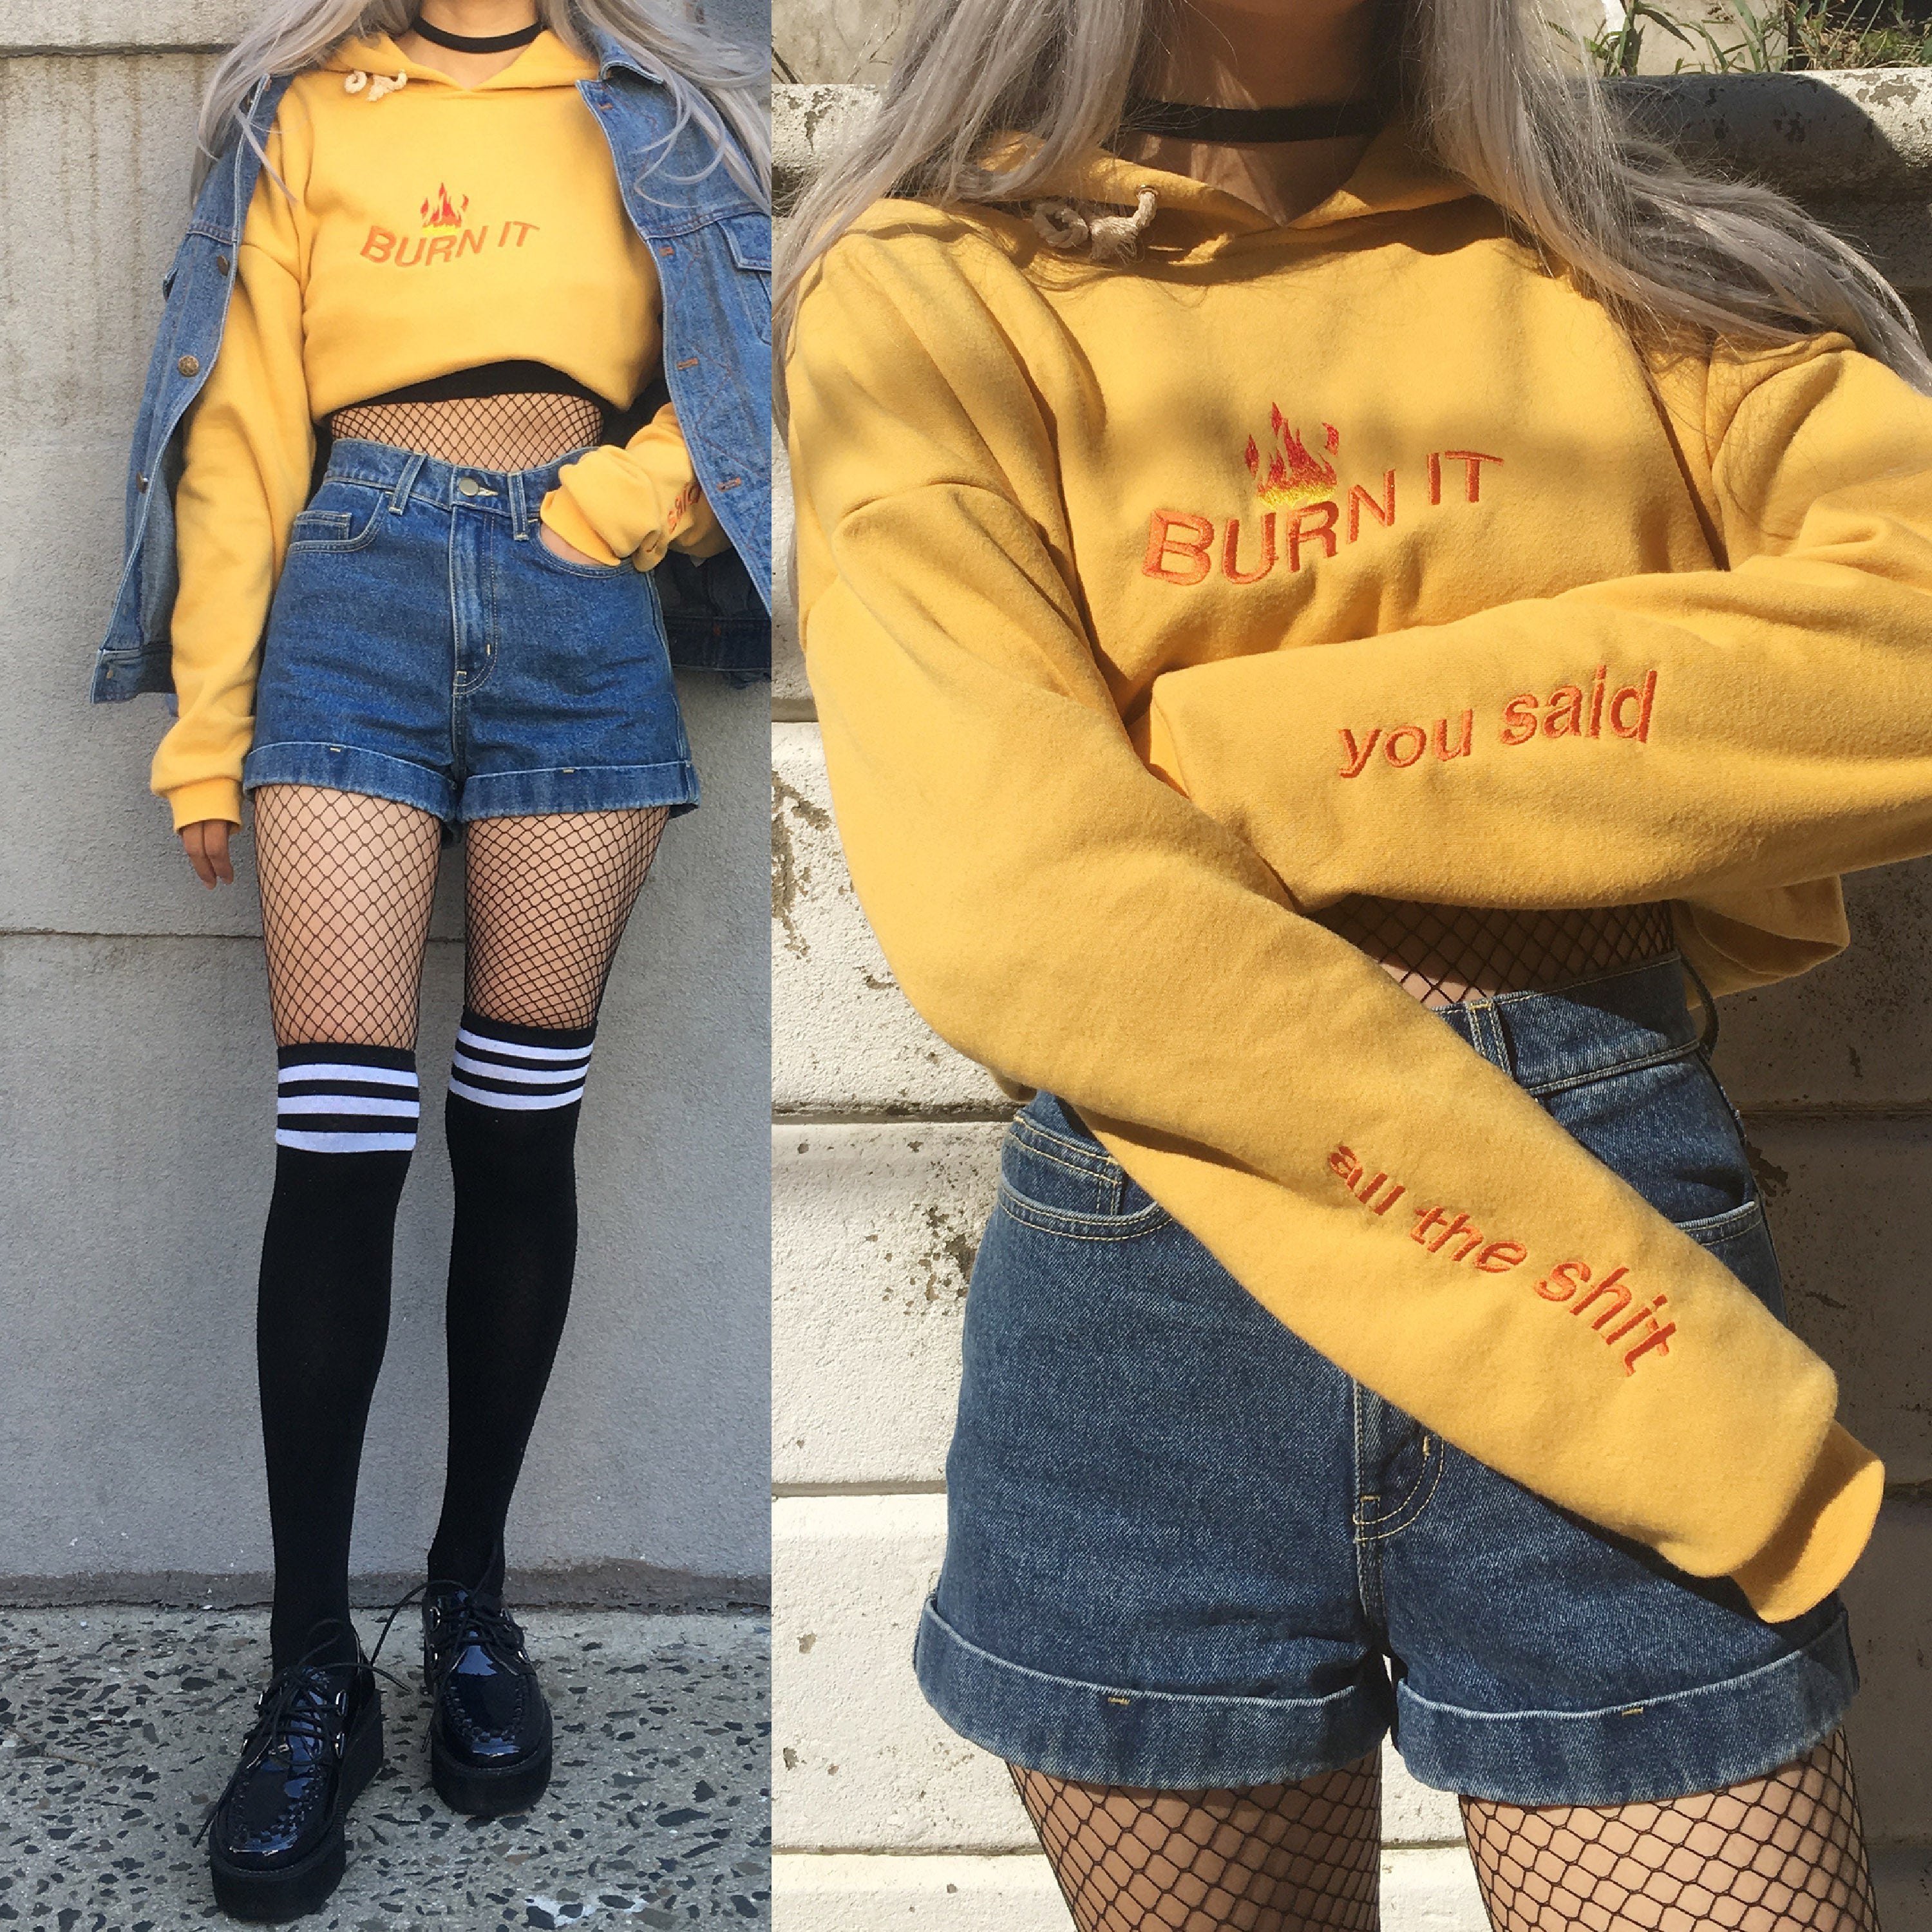 LIMITED ITEM - 90S VINTAGE GRUNGE BURN IT OUTFIT - kokopiecoco